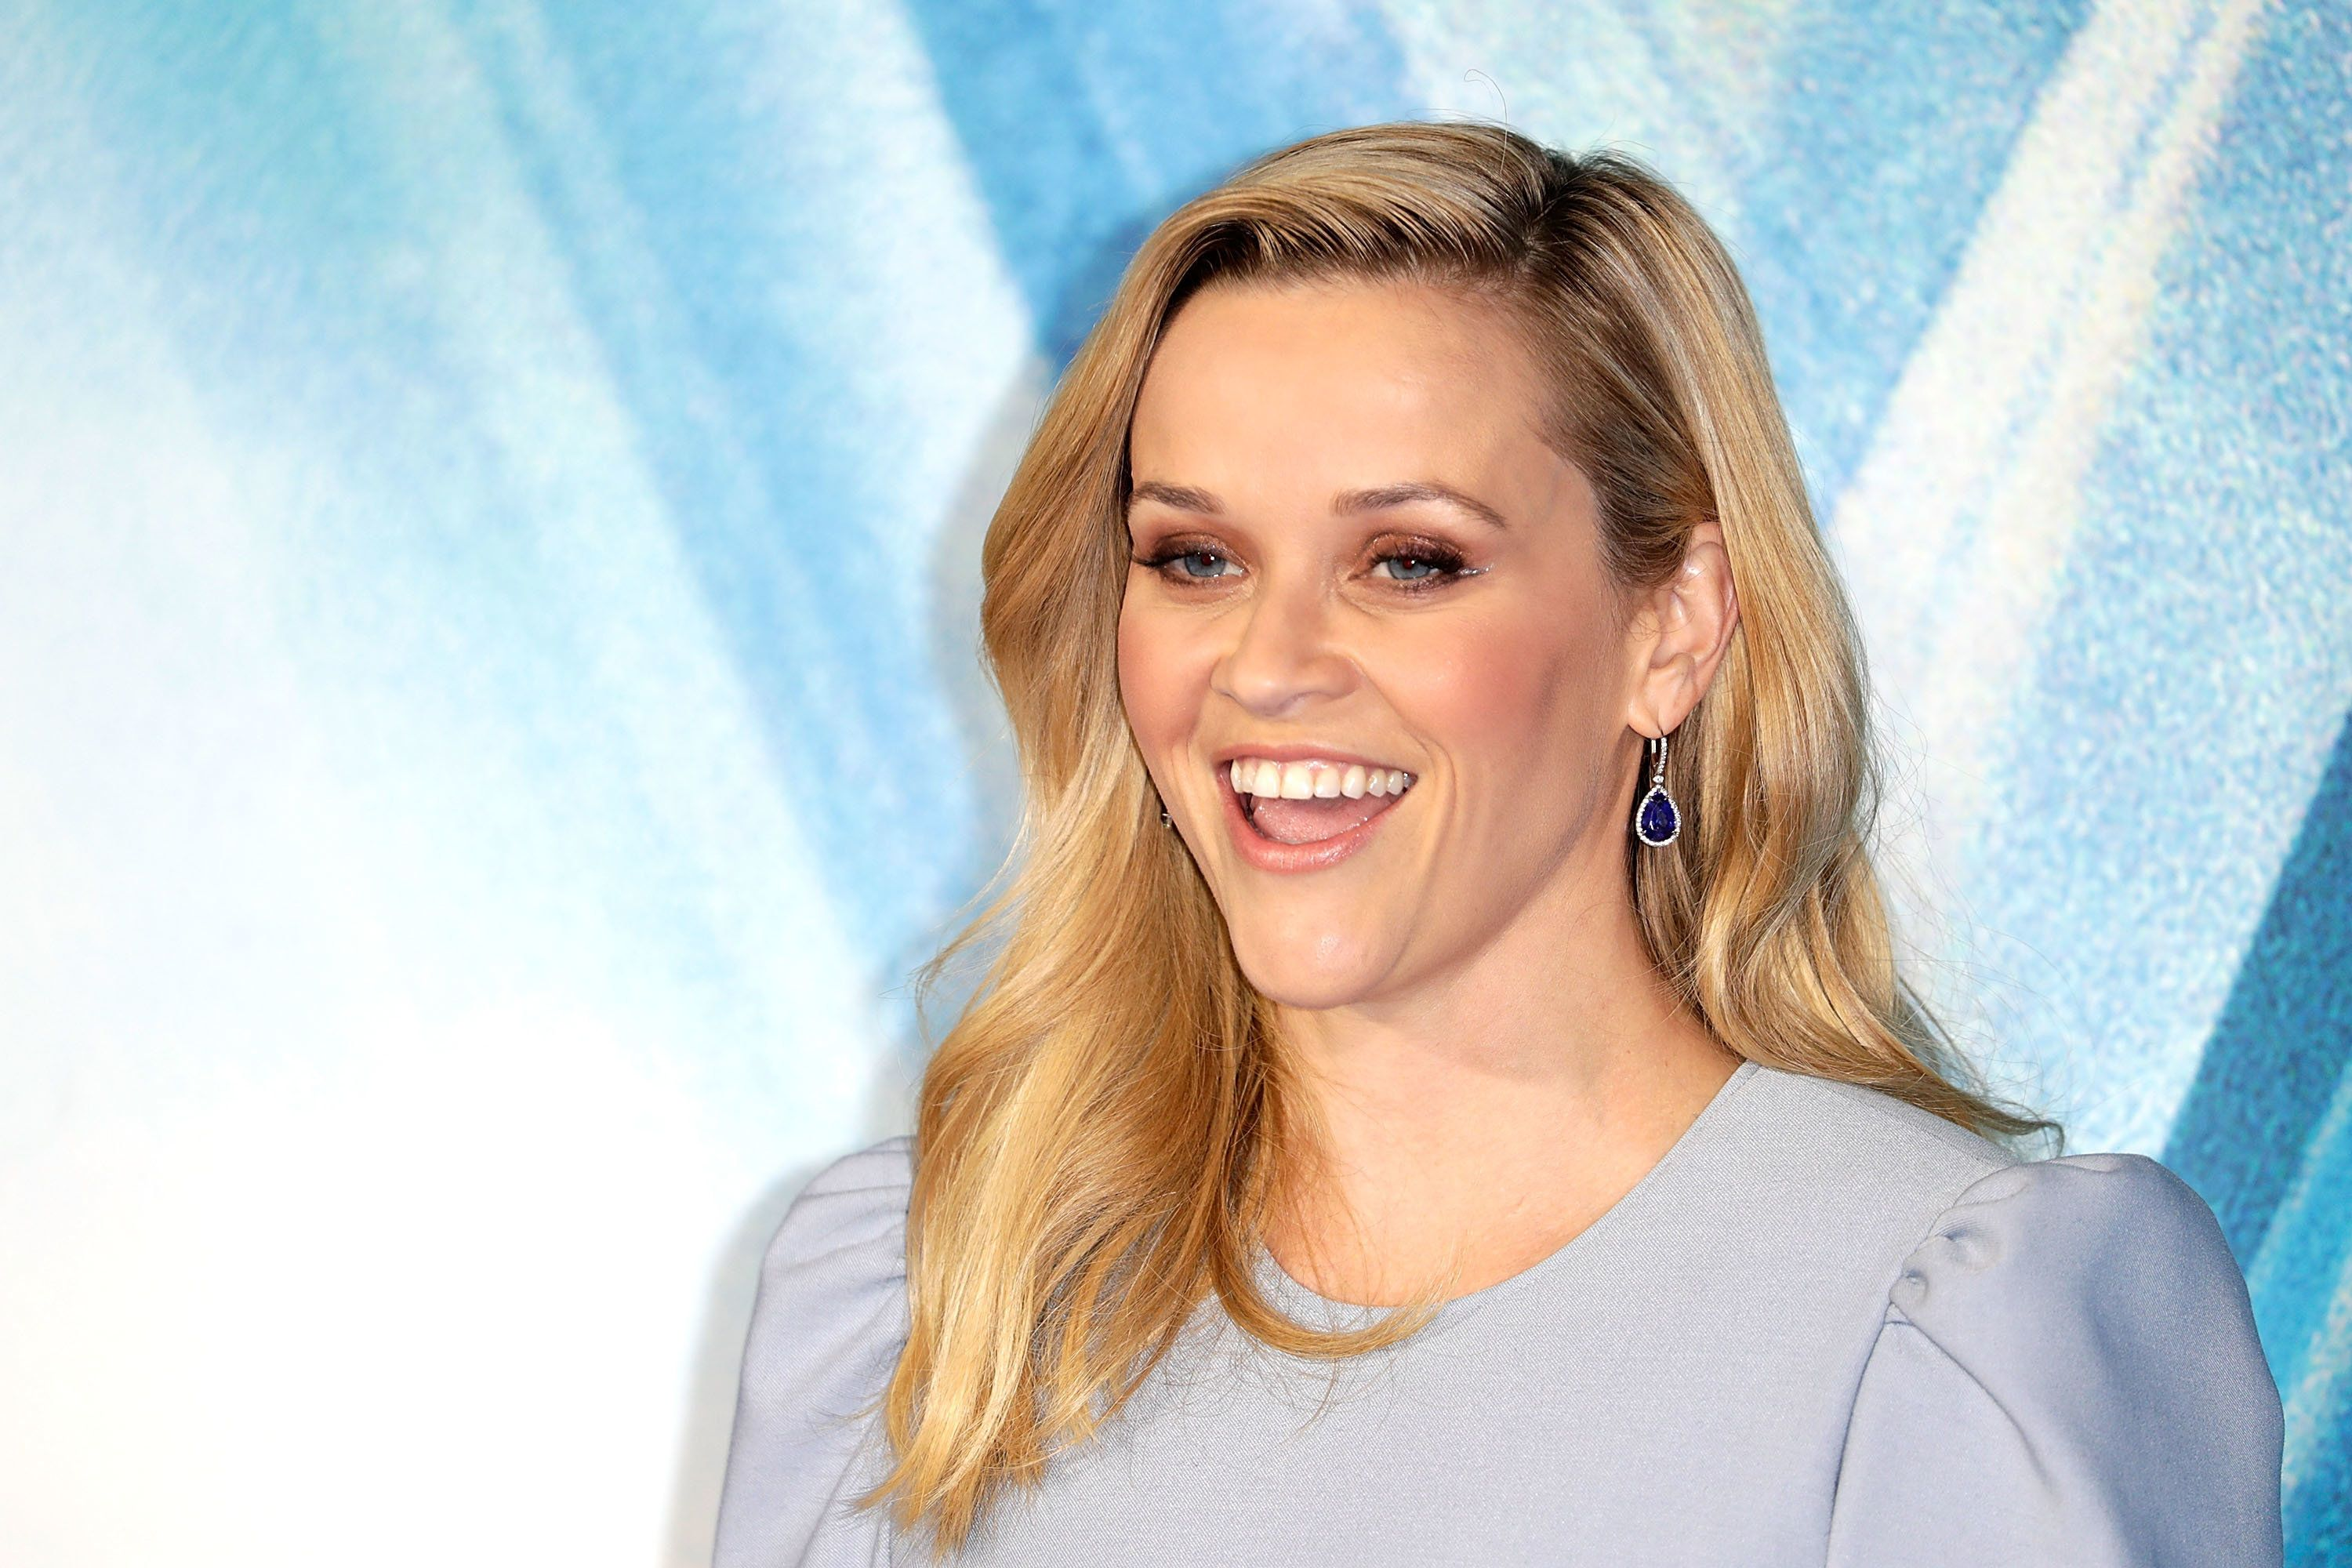 LONDON, ENGLAND - MARCH 13:  Reese Witherspoon attends the European Premiere of 'A Wrinkle In Time' at BFI IMAX on March 13, 2018 in London, England.  (Photo by John Phillips/John Phillips/Getty Images)